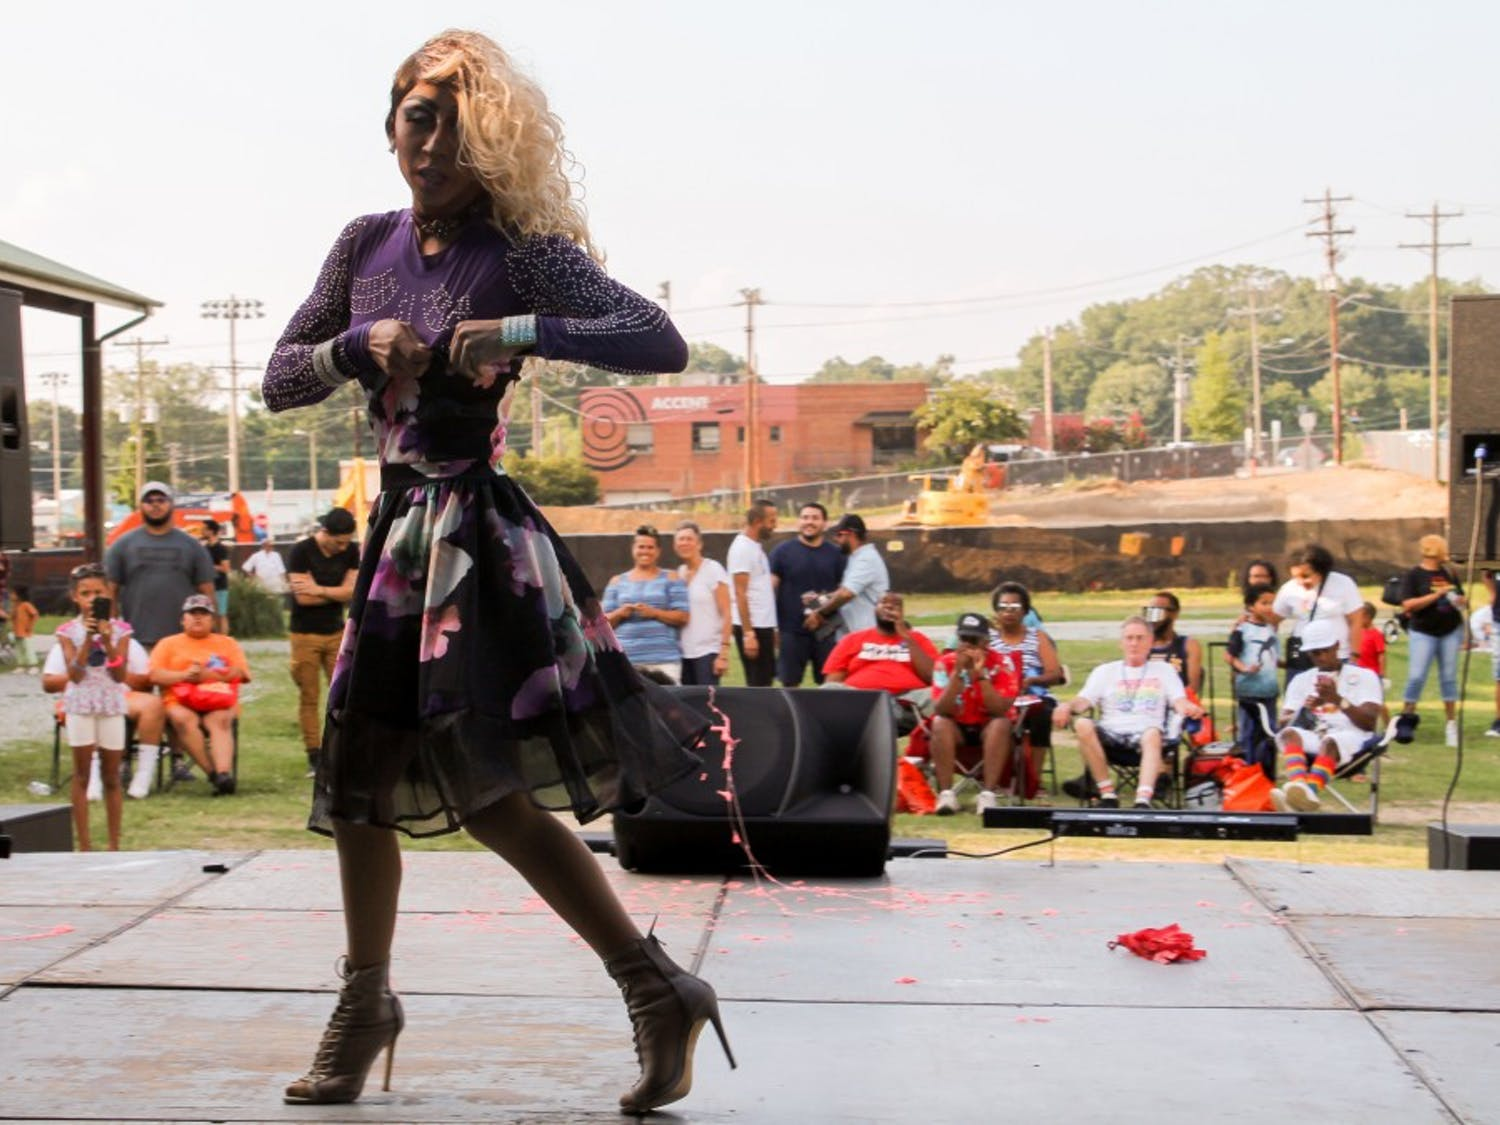 Orgullo Latinx was the first Latinx pride celebration in the triangle, taking place in downtown Durham on July 28.